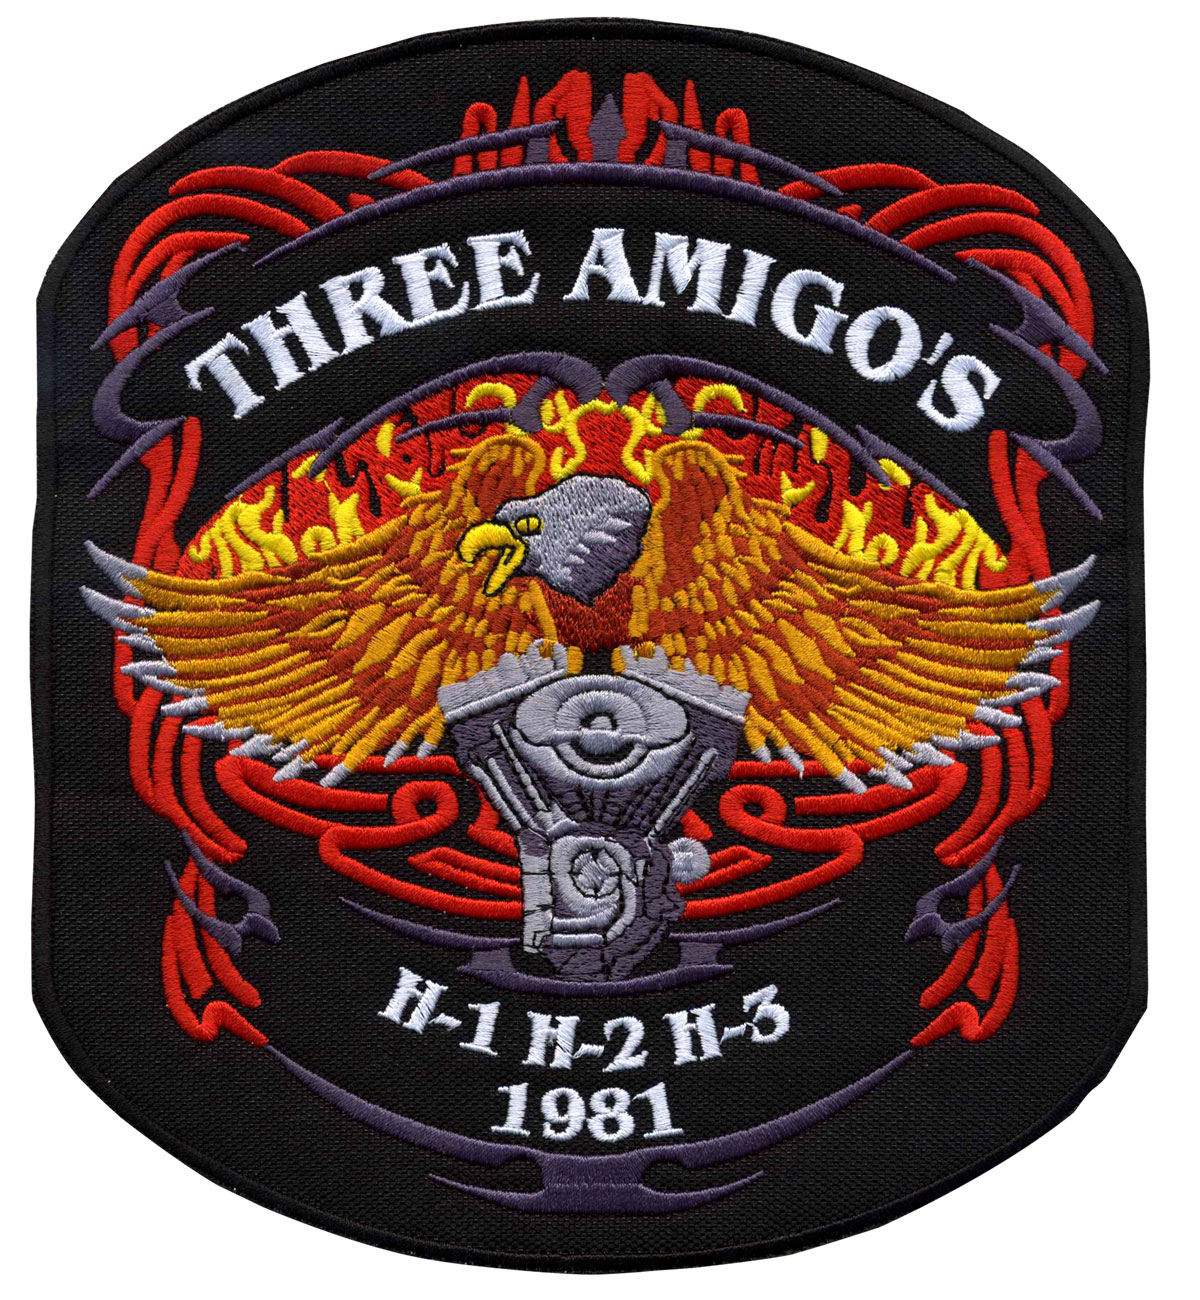 Description du patch de motard brode pour Three Amigos.